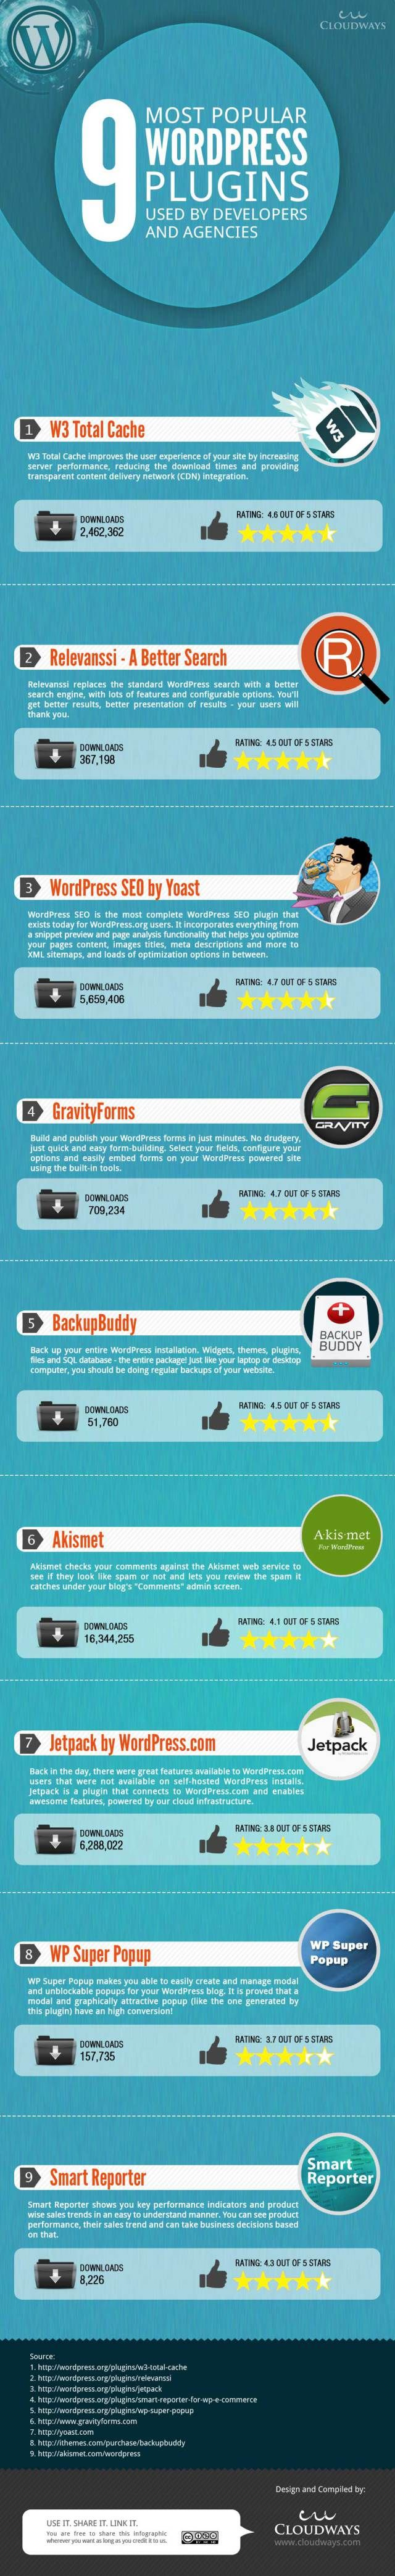 9 most popular WordPress plugins used by developers and agencies #infografia #infogaphic